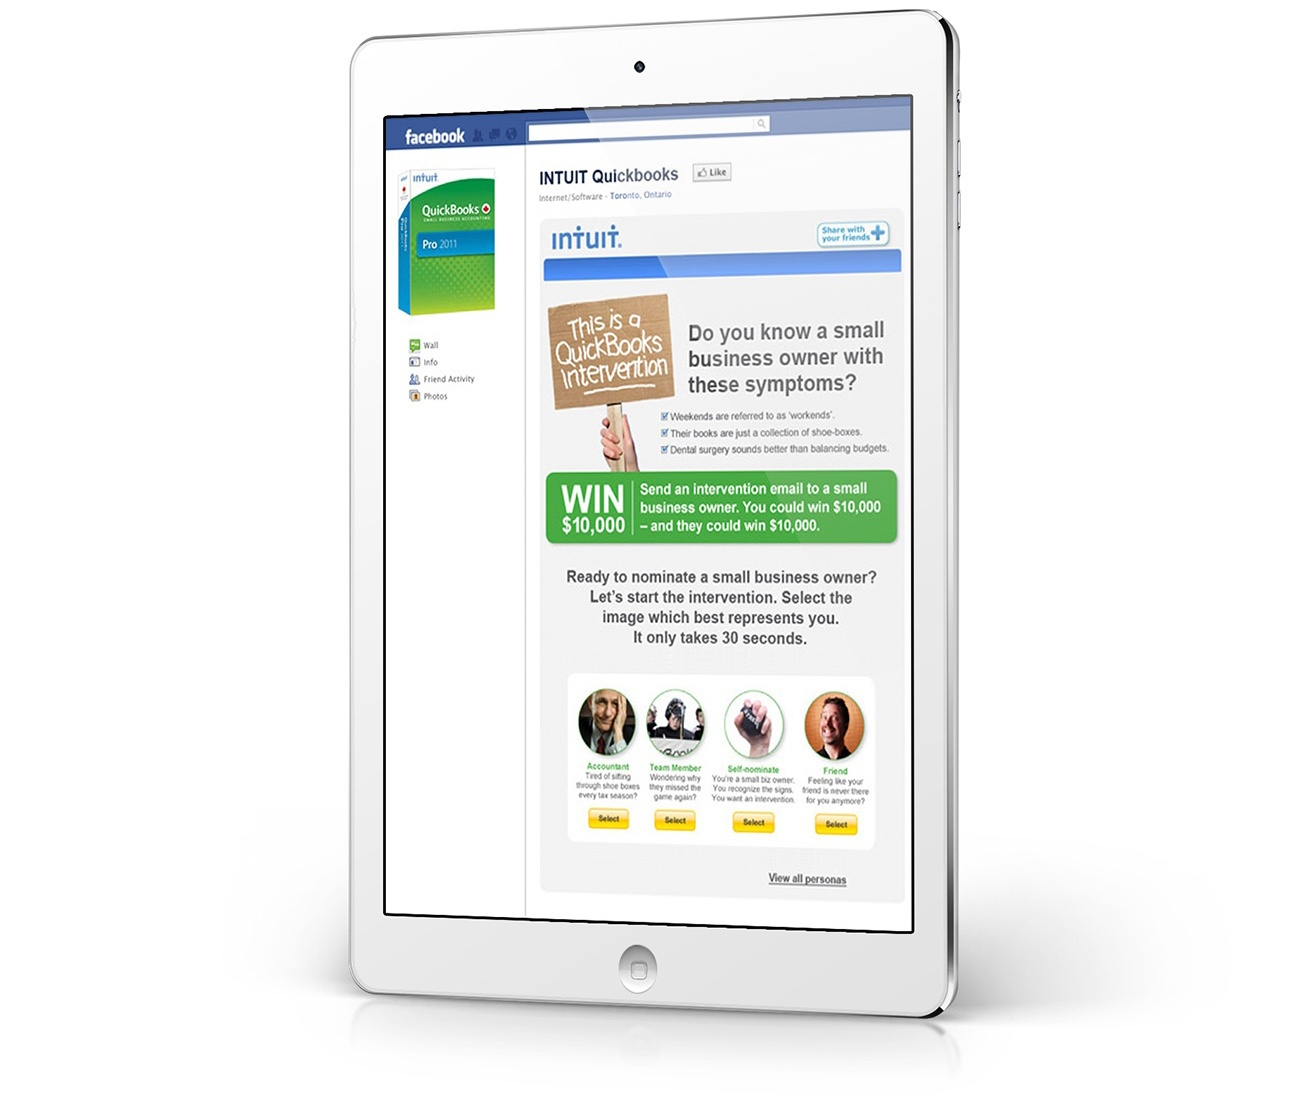 Intuit Facebook Page